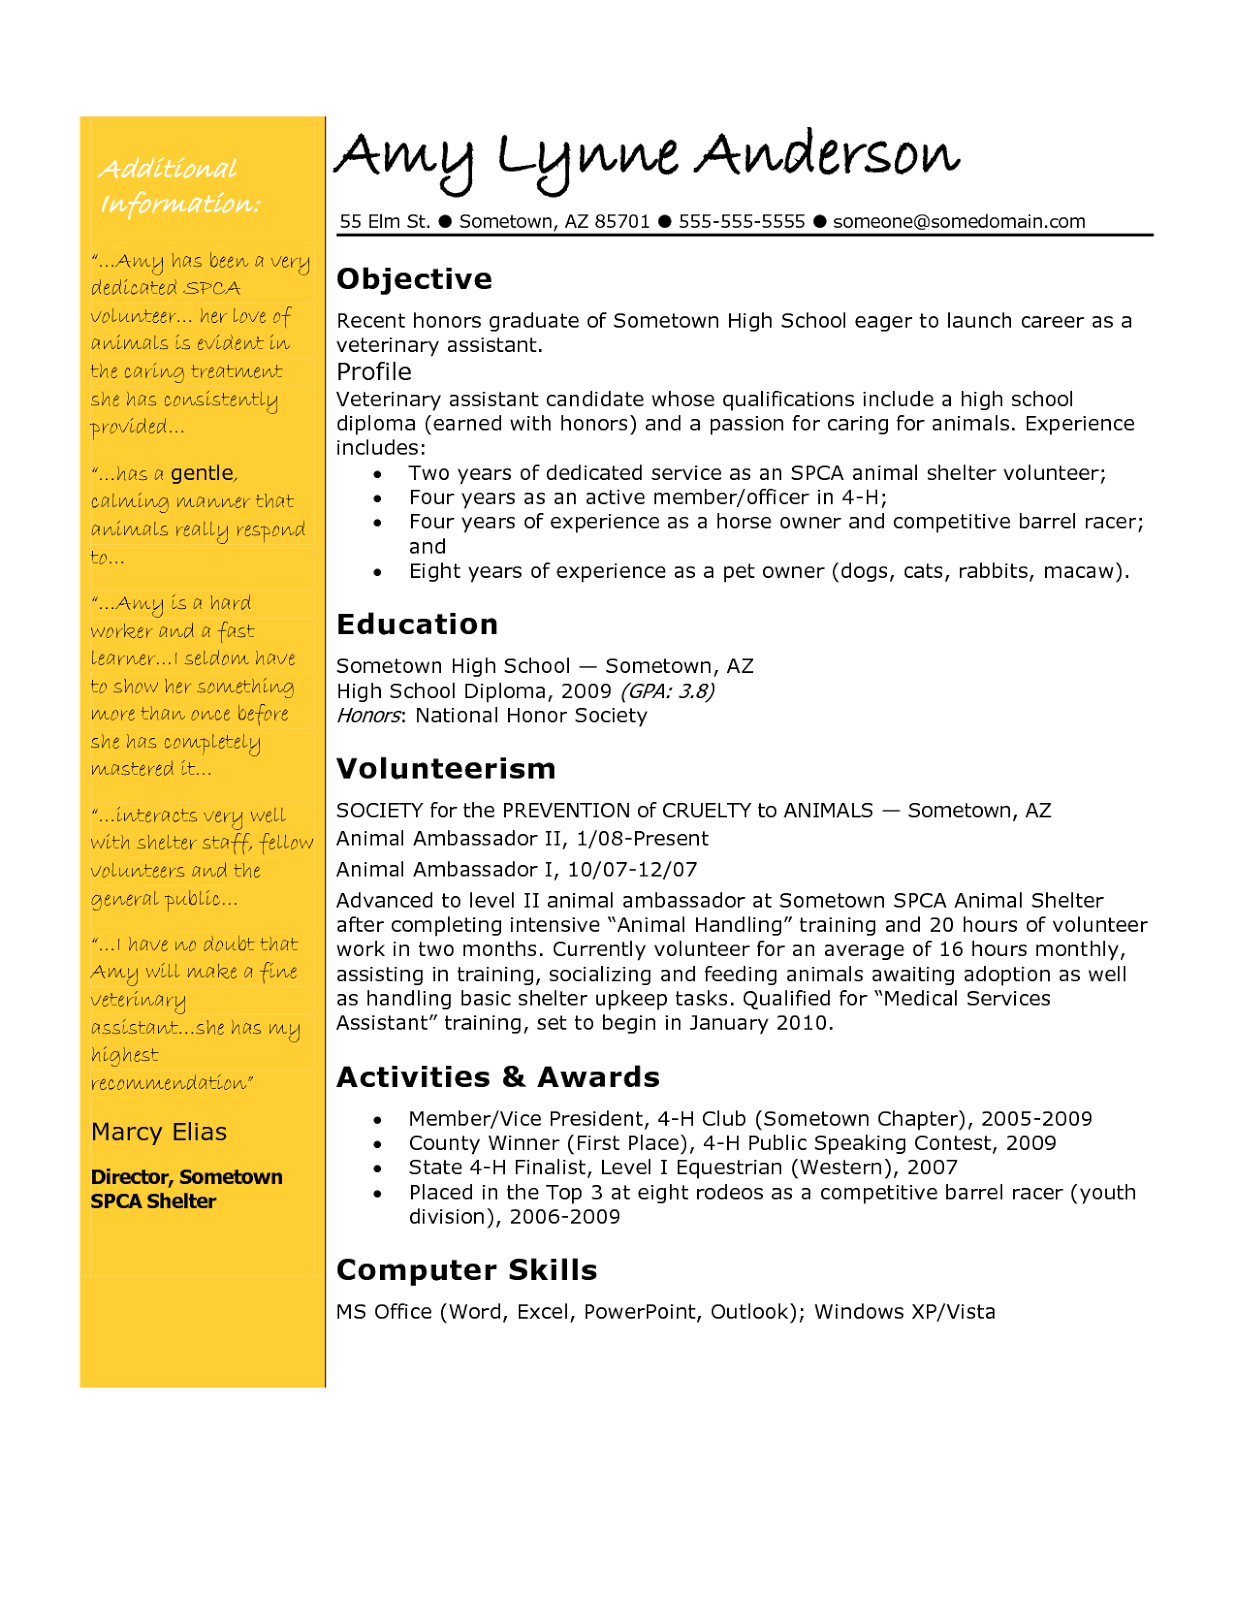 Download Resume Objective Examples For Teacher In Word Format